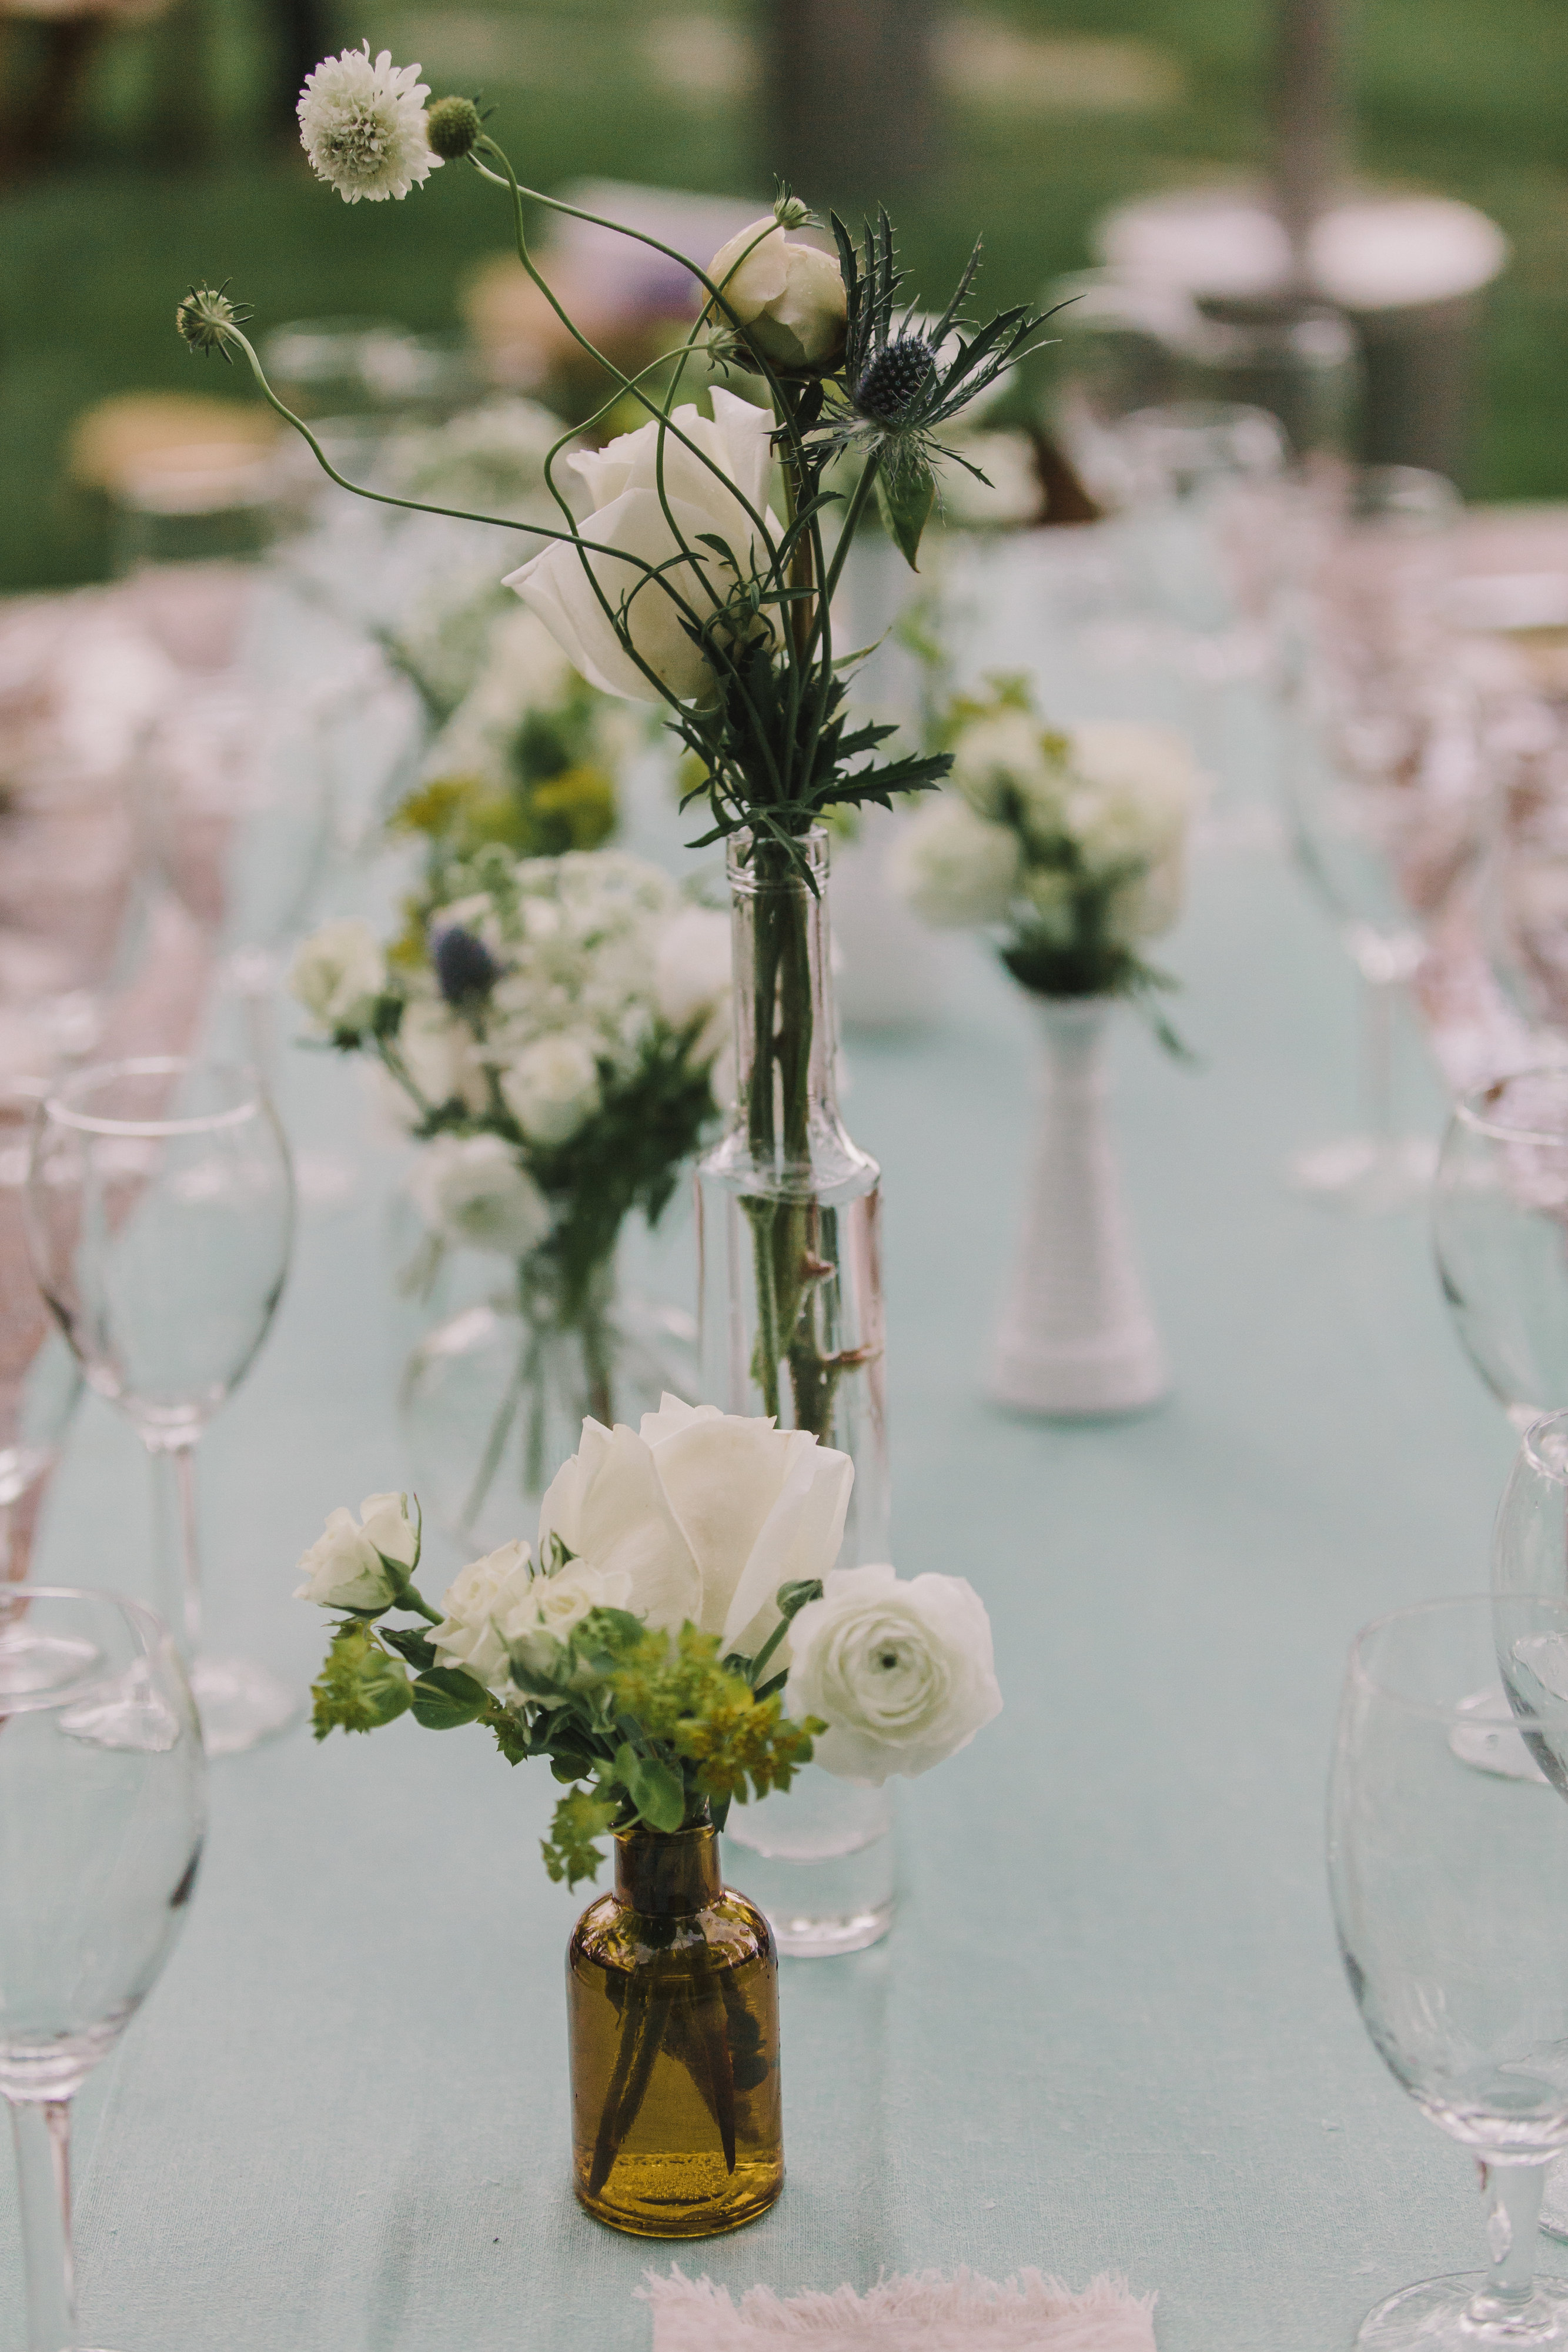 A_Floral_Affair_Gardnerville_Tahoe_Reno_Wedding_Florist_Reception_Centerpiece (6)